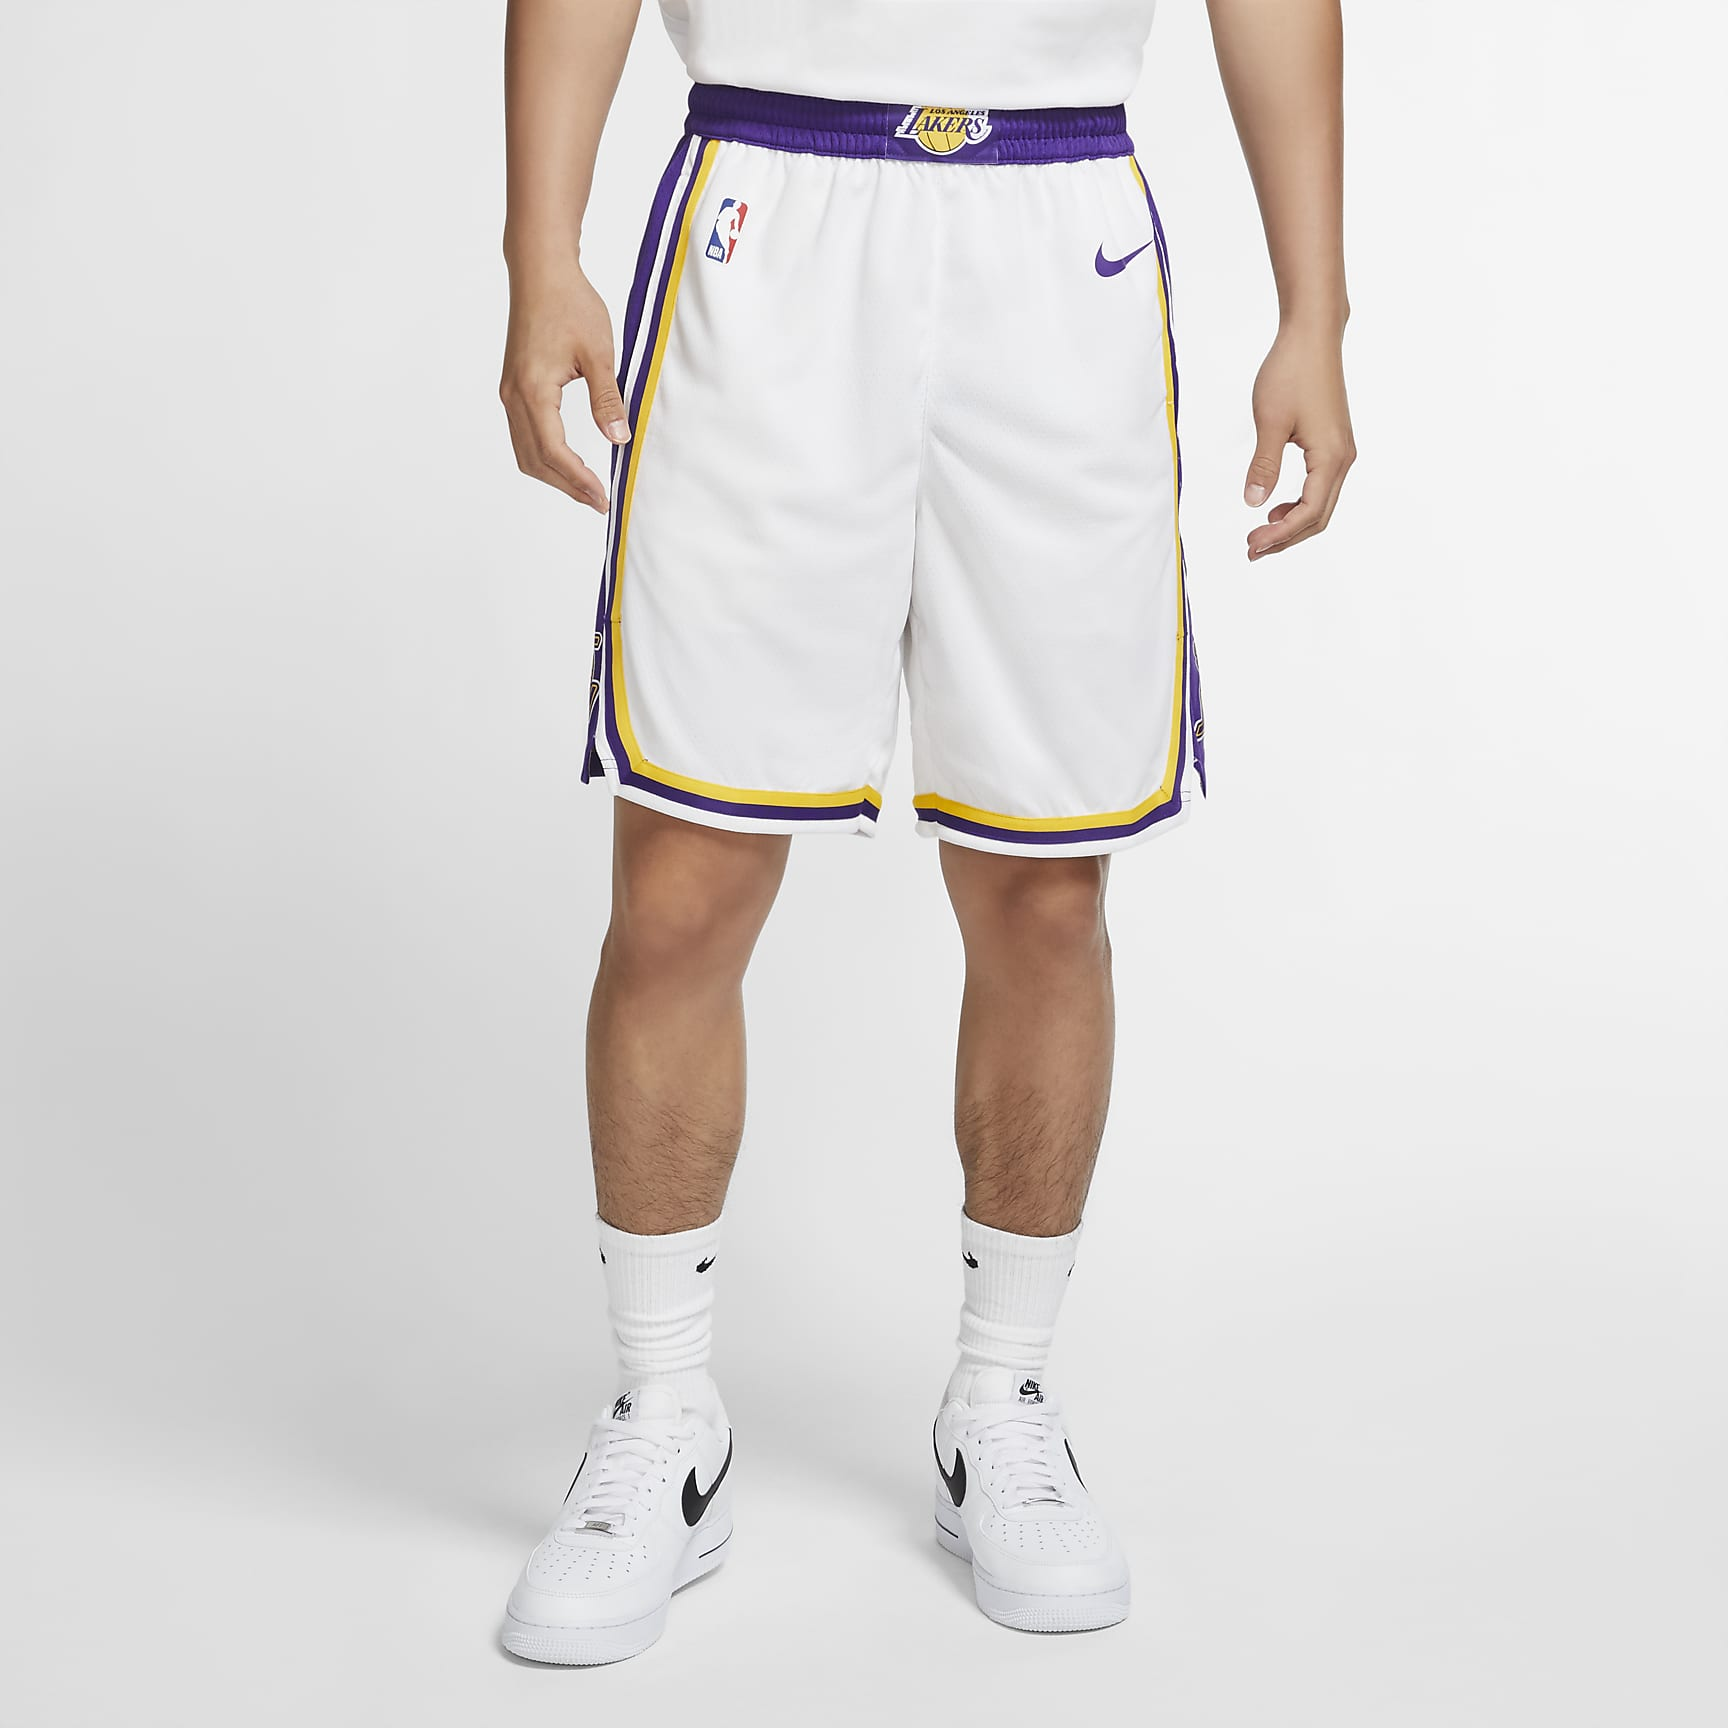 meskie-spodenki-nba-los-angeles-lakers-association-edition-swingman-sMTzN7.jpg